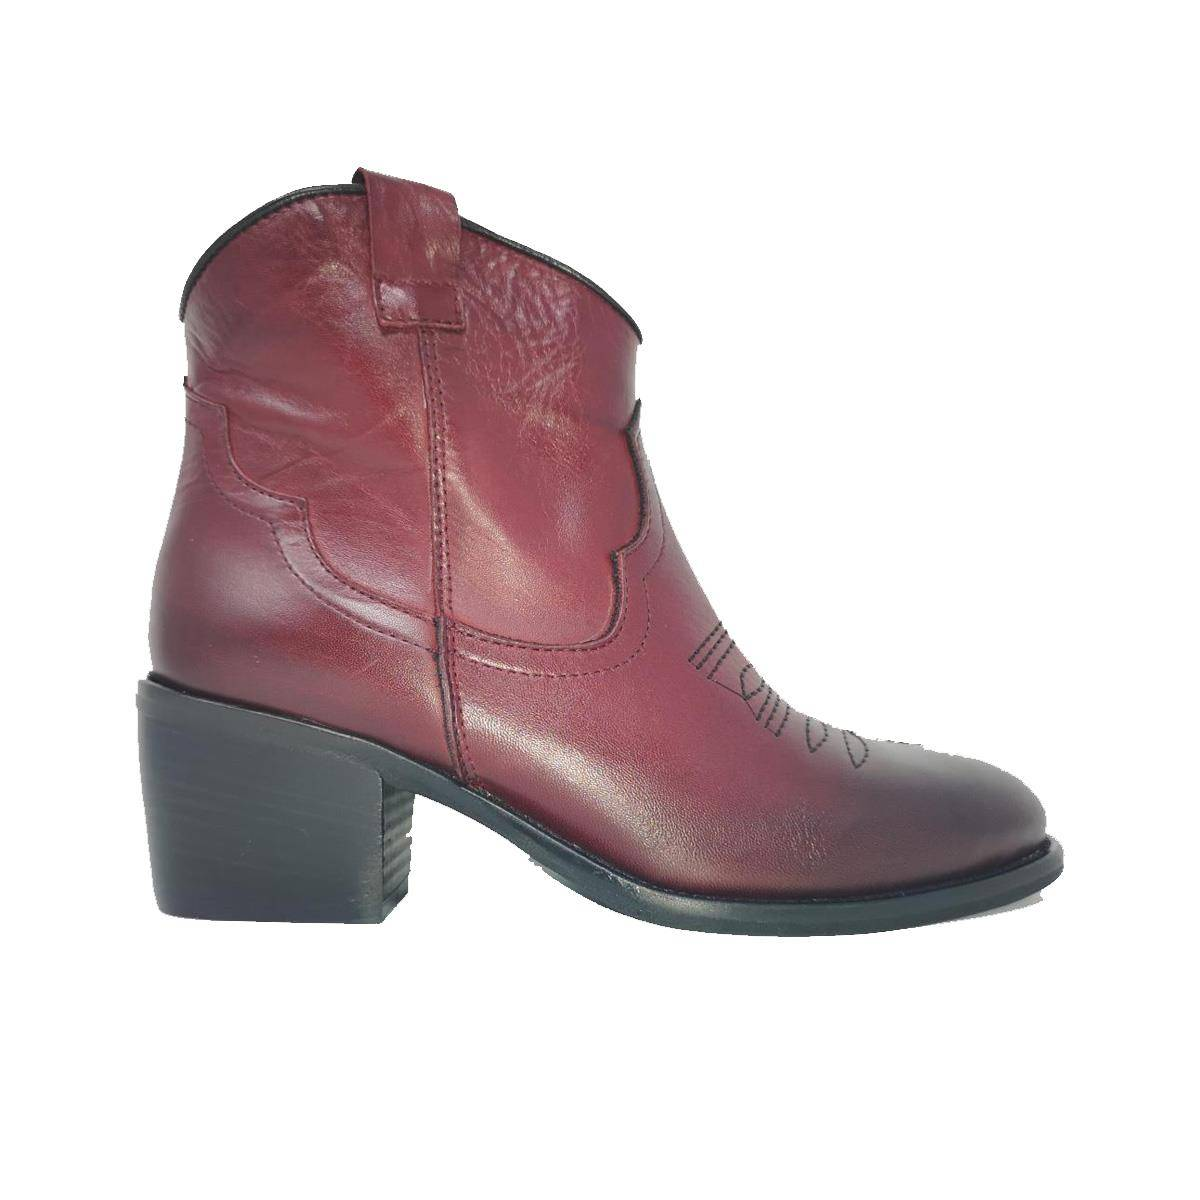 Exton Camperos Donna In Pelle Con Tacco Bordeaux